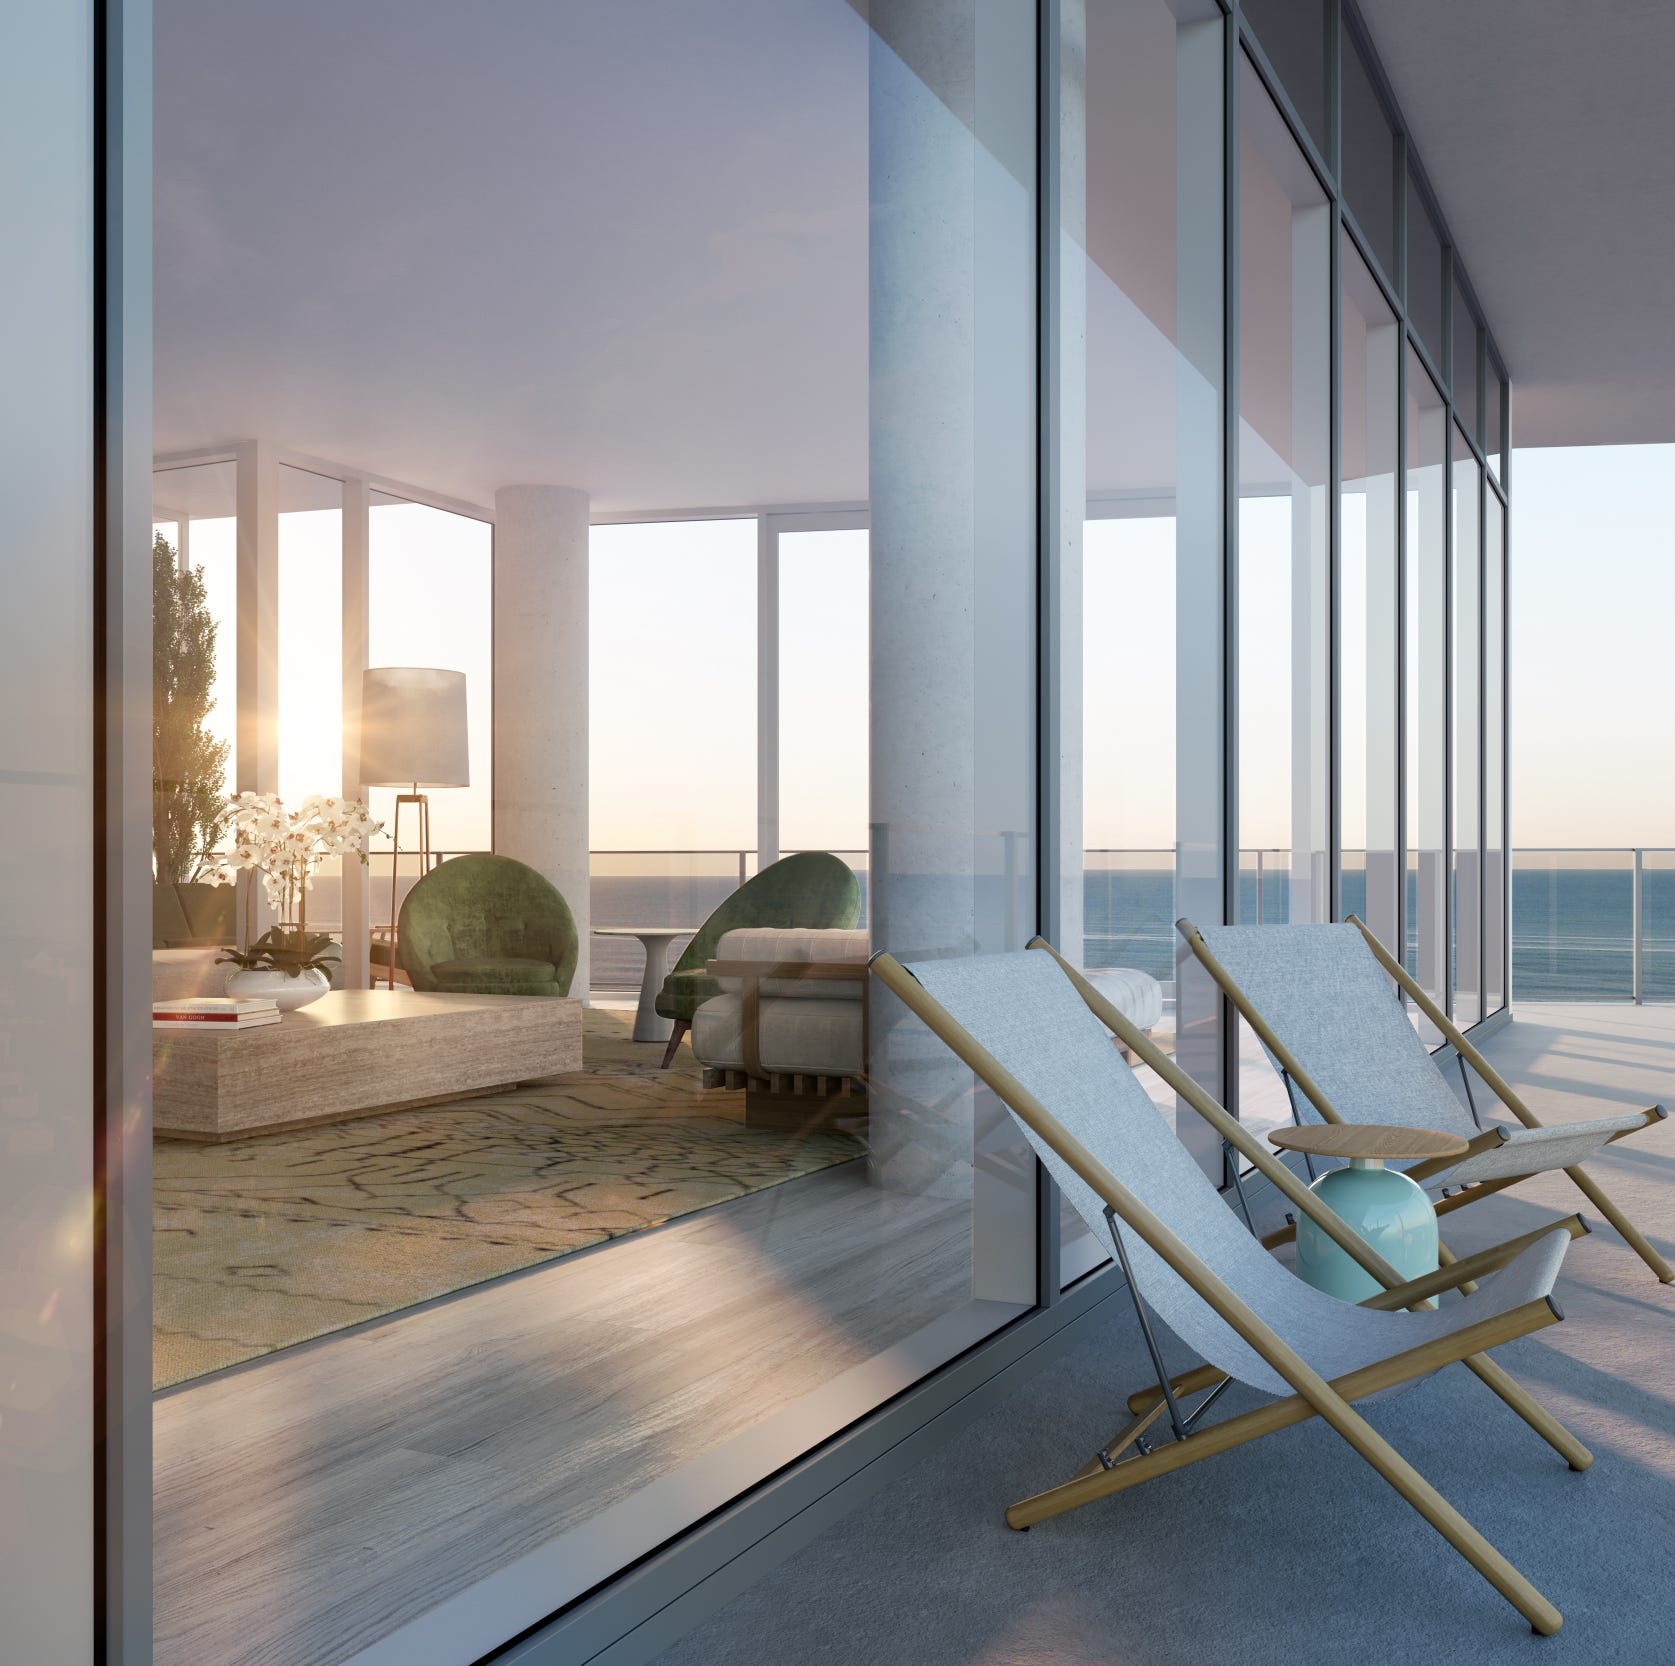 Asbury Park's most expensive home: See $5.9M Asbury Ocean Club penthouse